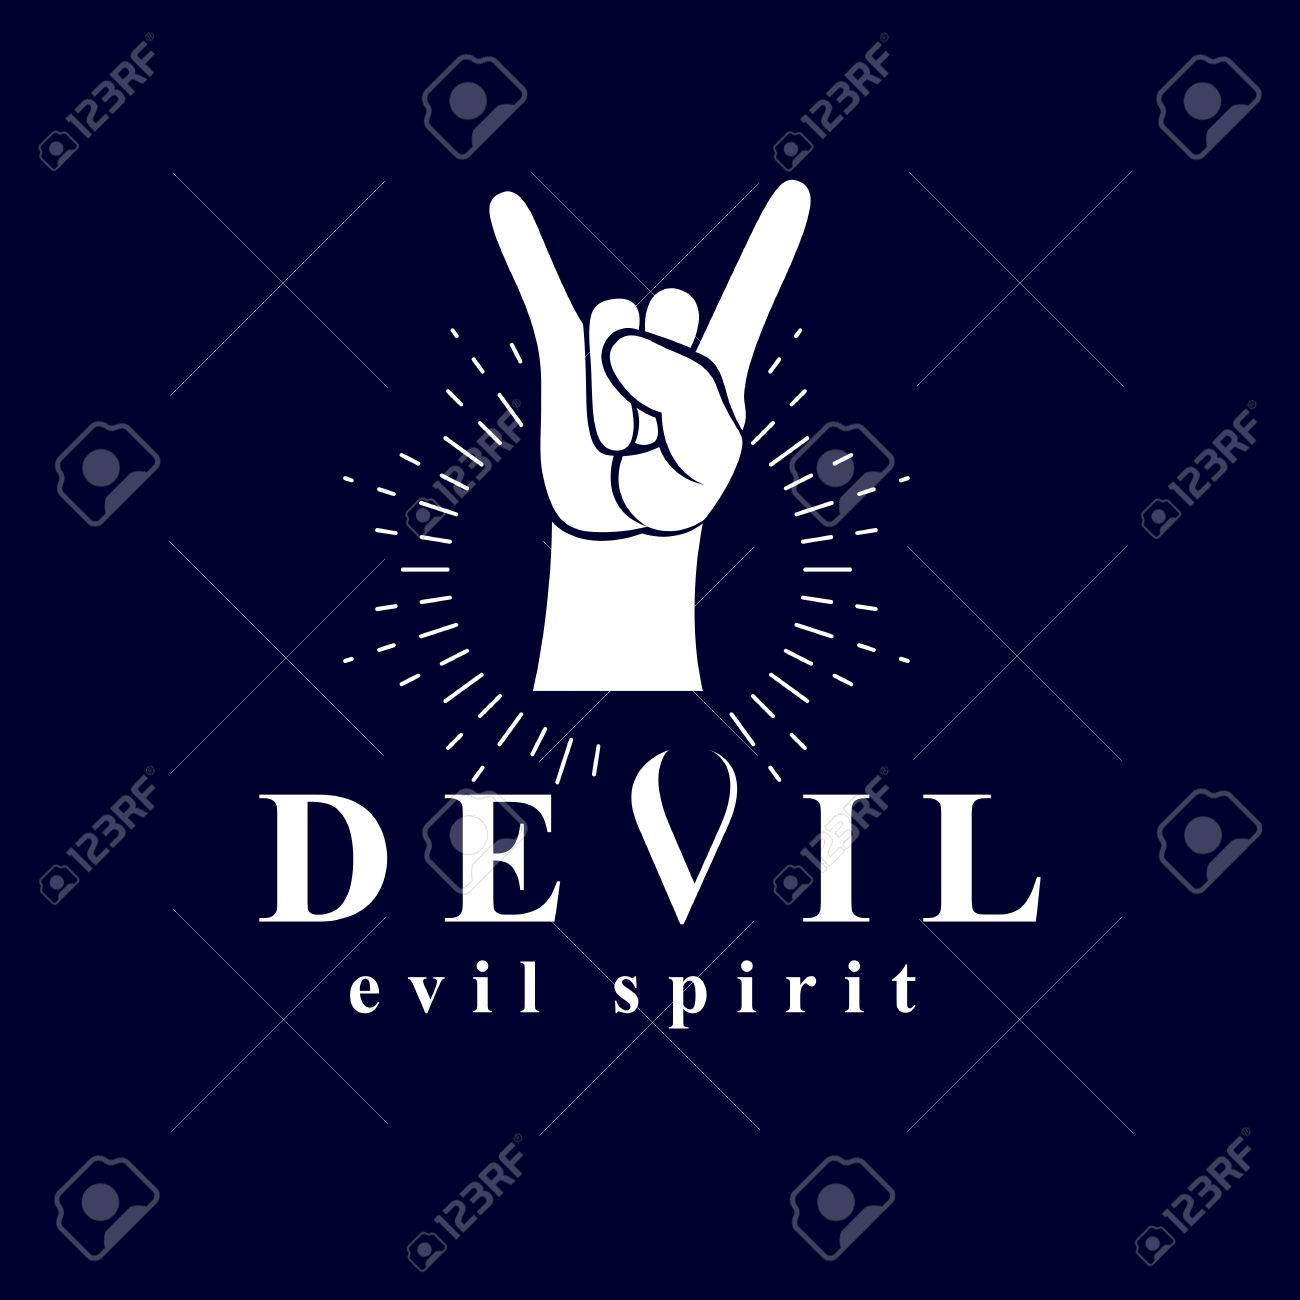 Rock on hand sign created with a devil inscription evil spirit rock on hand sign created with a devil inscription evil spirit logo stock vector buycottarizona